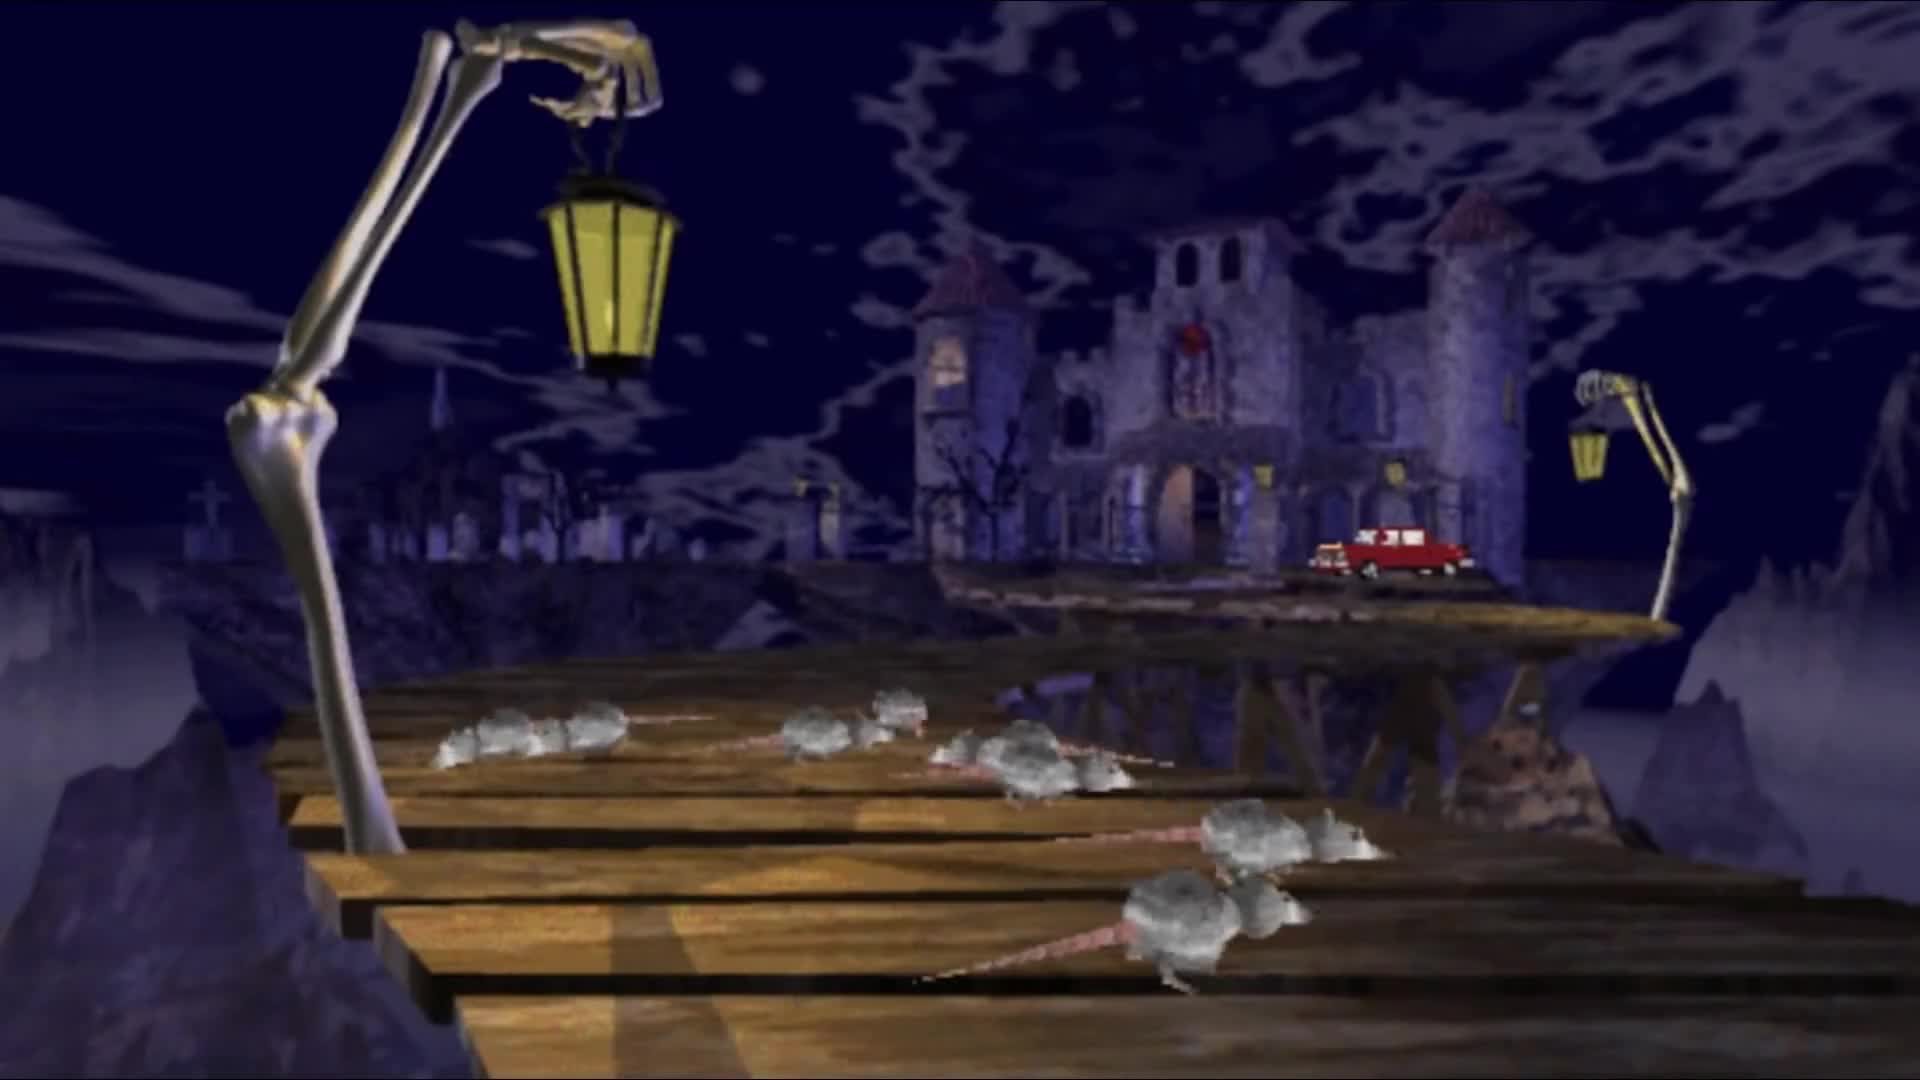 Rodent Time. .. >The thud the rat makes when it falls off the bridge Holy my sides